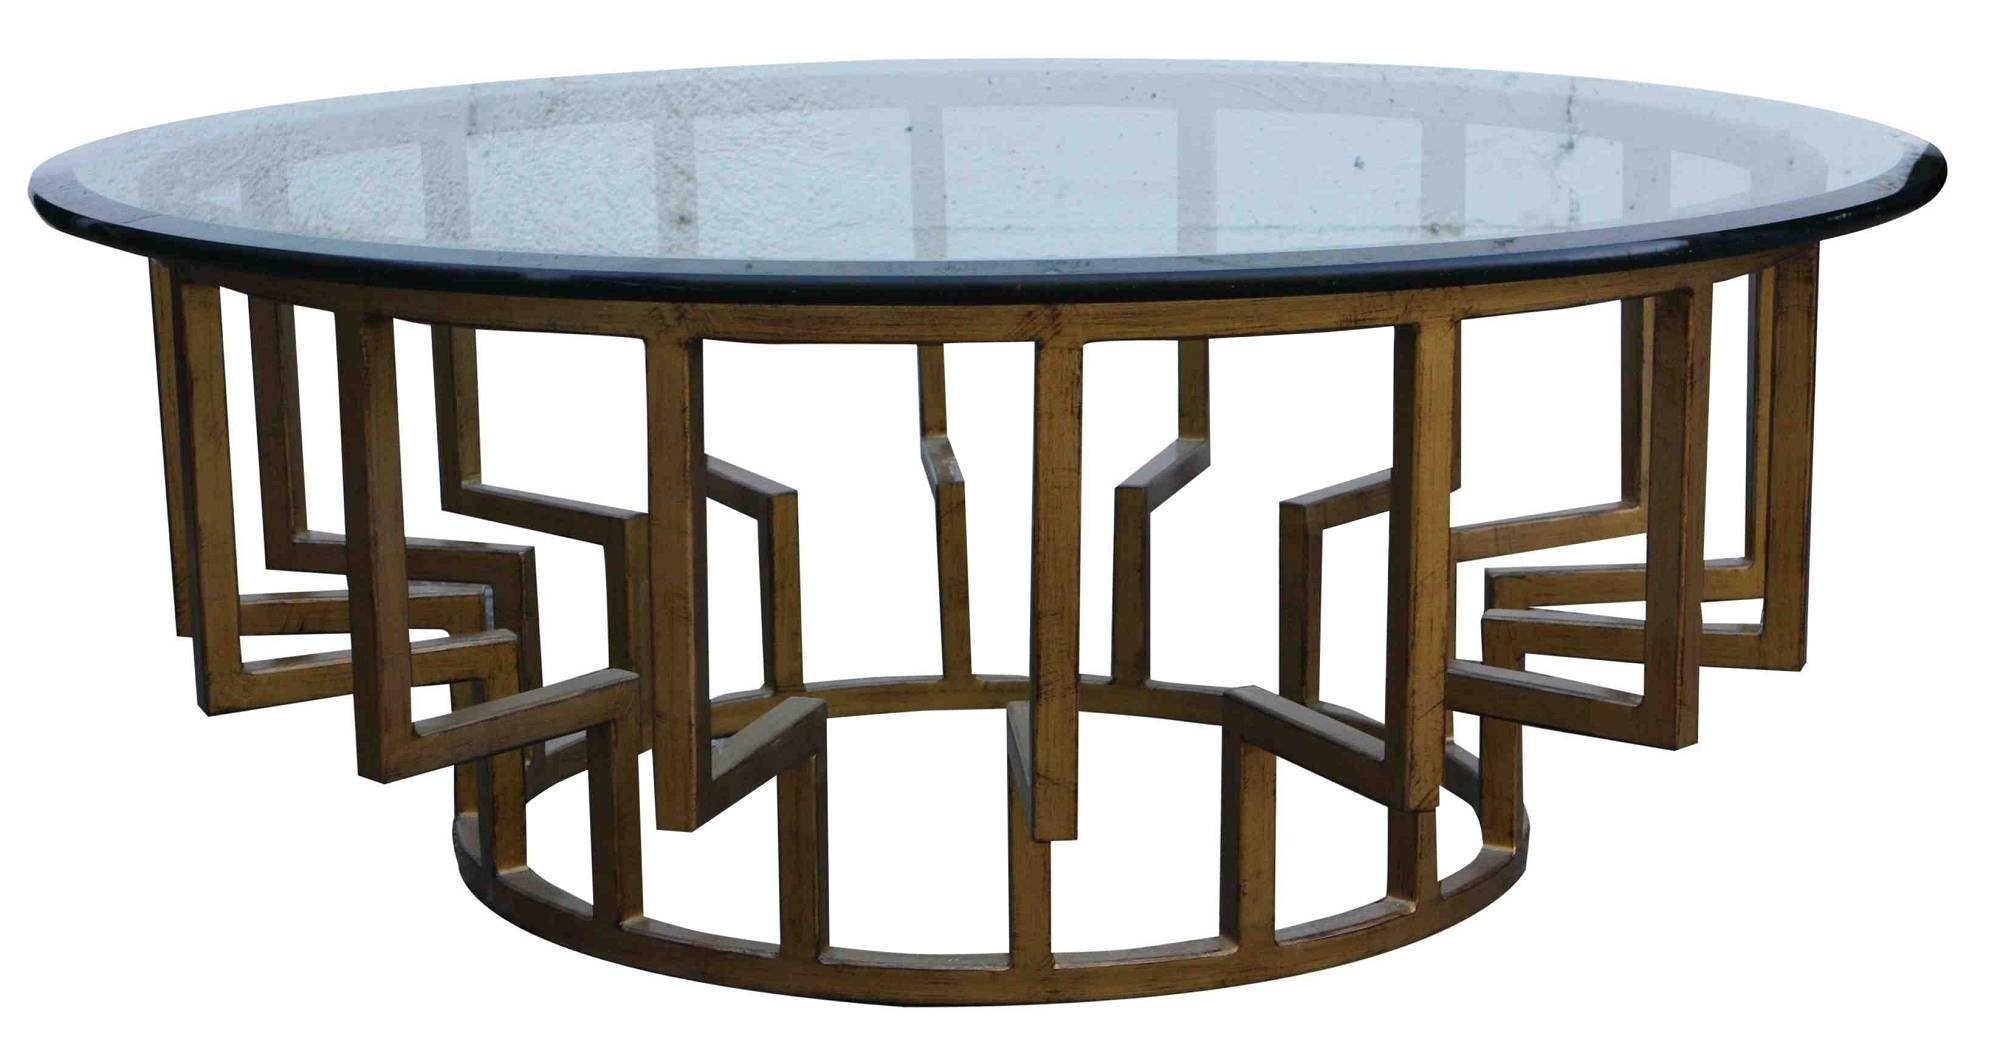 Round Glass Top Coffee Table With Metal Base | Coffee Tables in Round Glass And Wood Coffee Tables (Image 19 of 30)